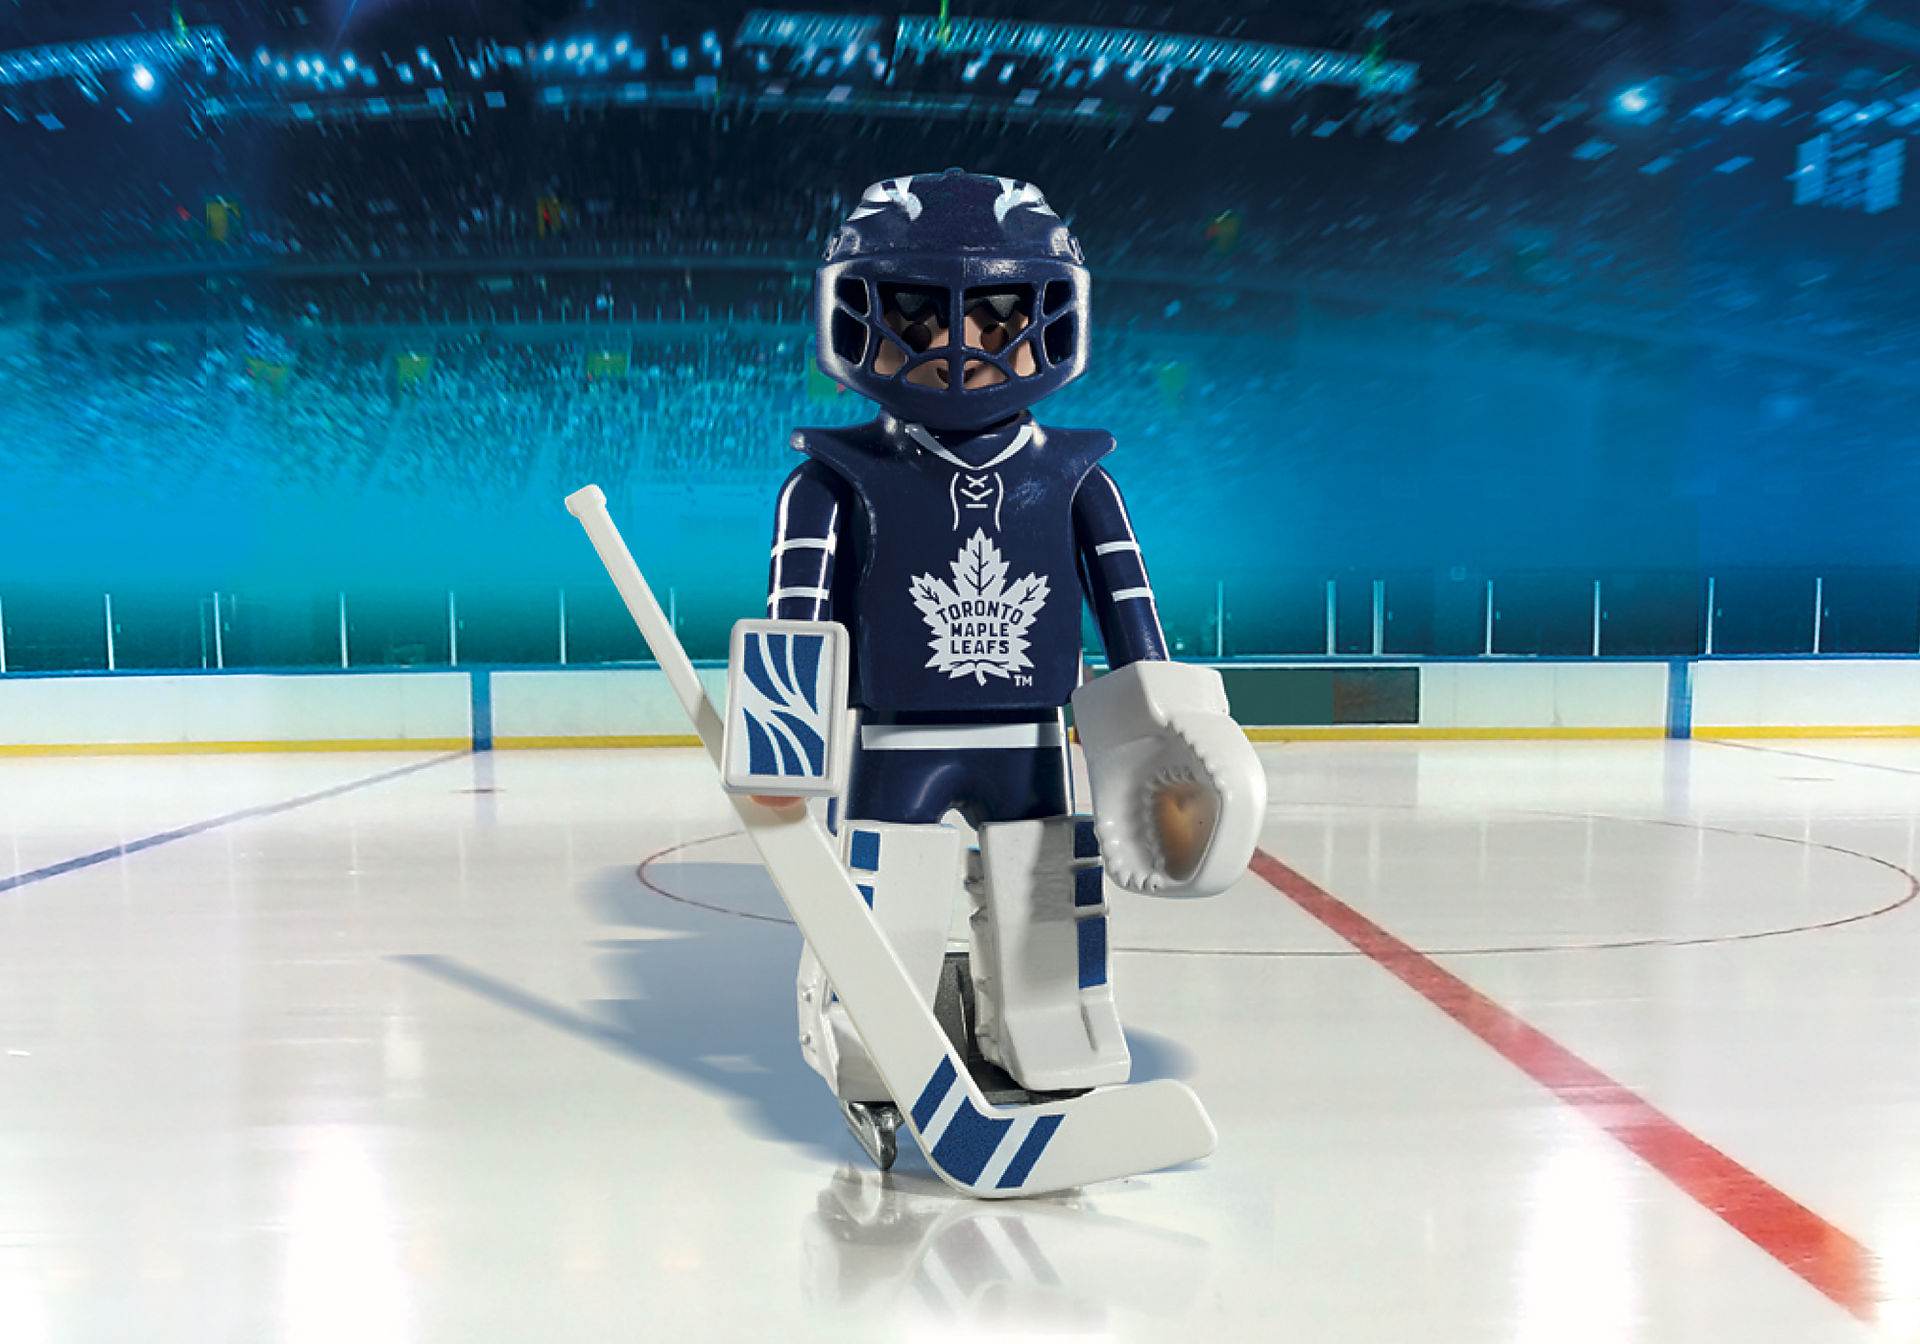 5083 NHL™ Toronto Maple Leafs™ Goalie zoom image1